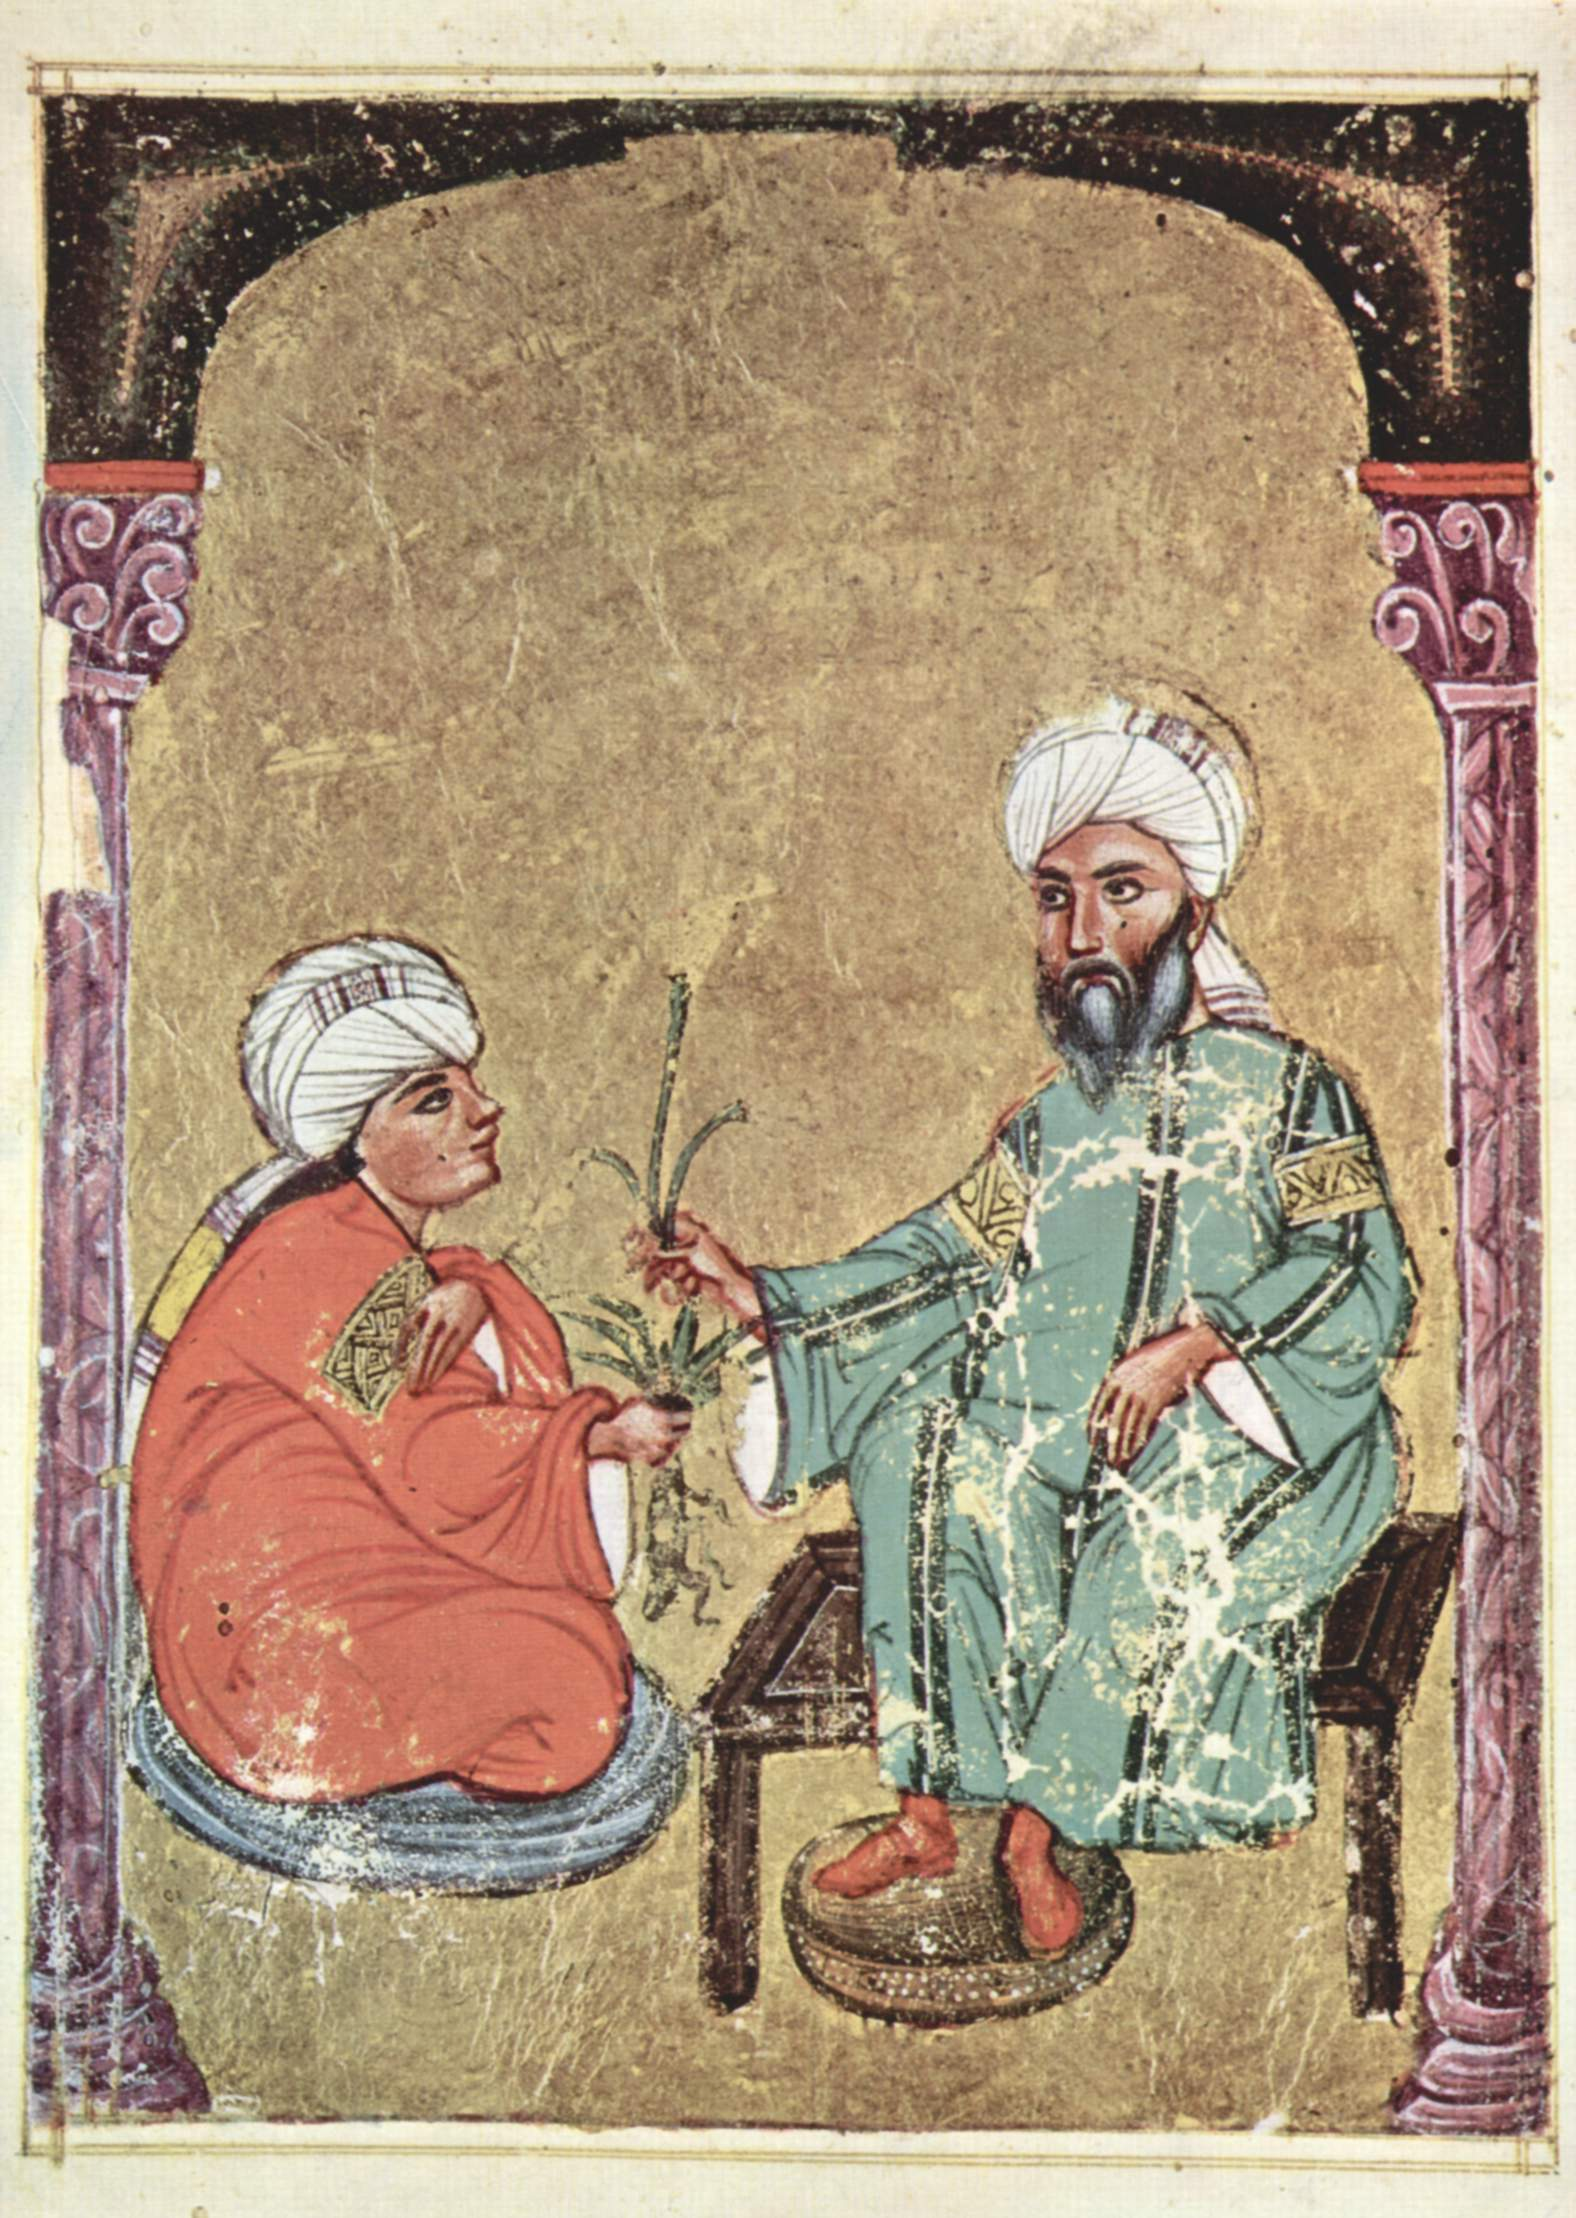 Medicine in the medieval Islamic world - Wikipedia